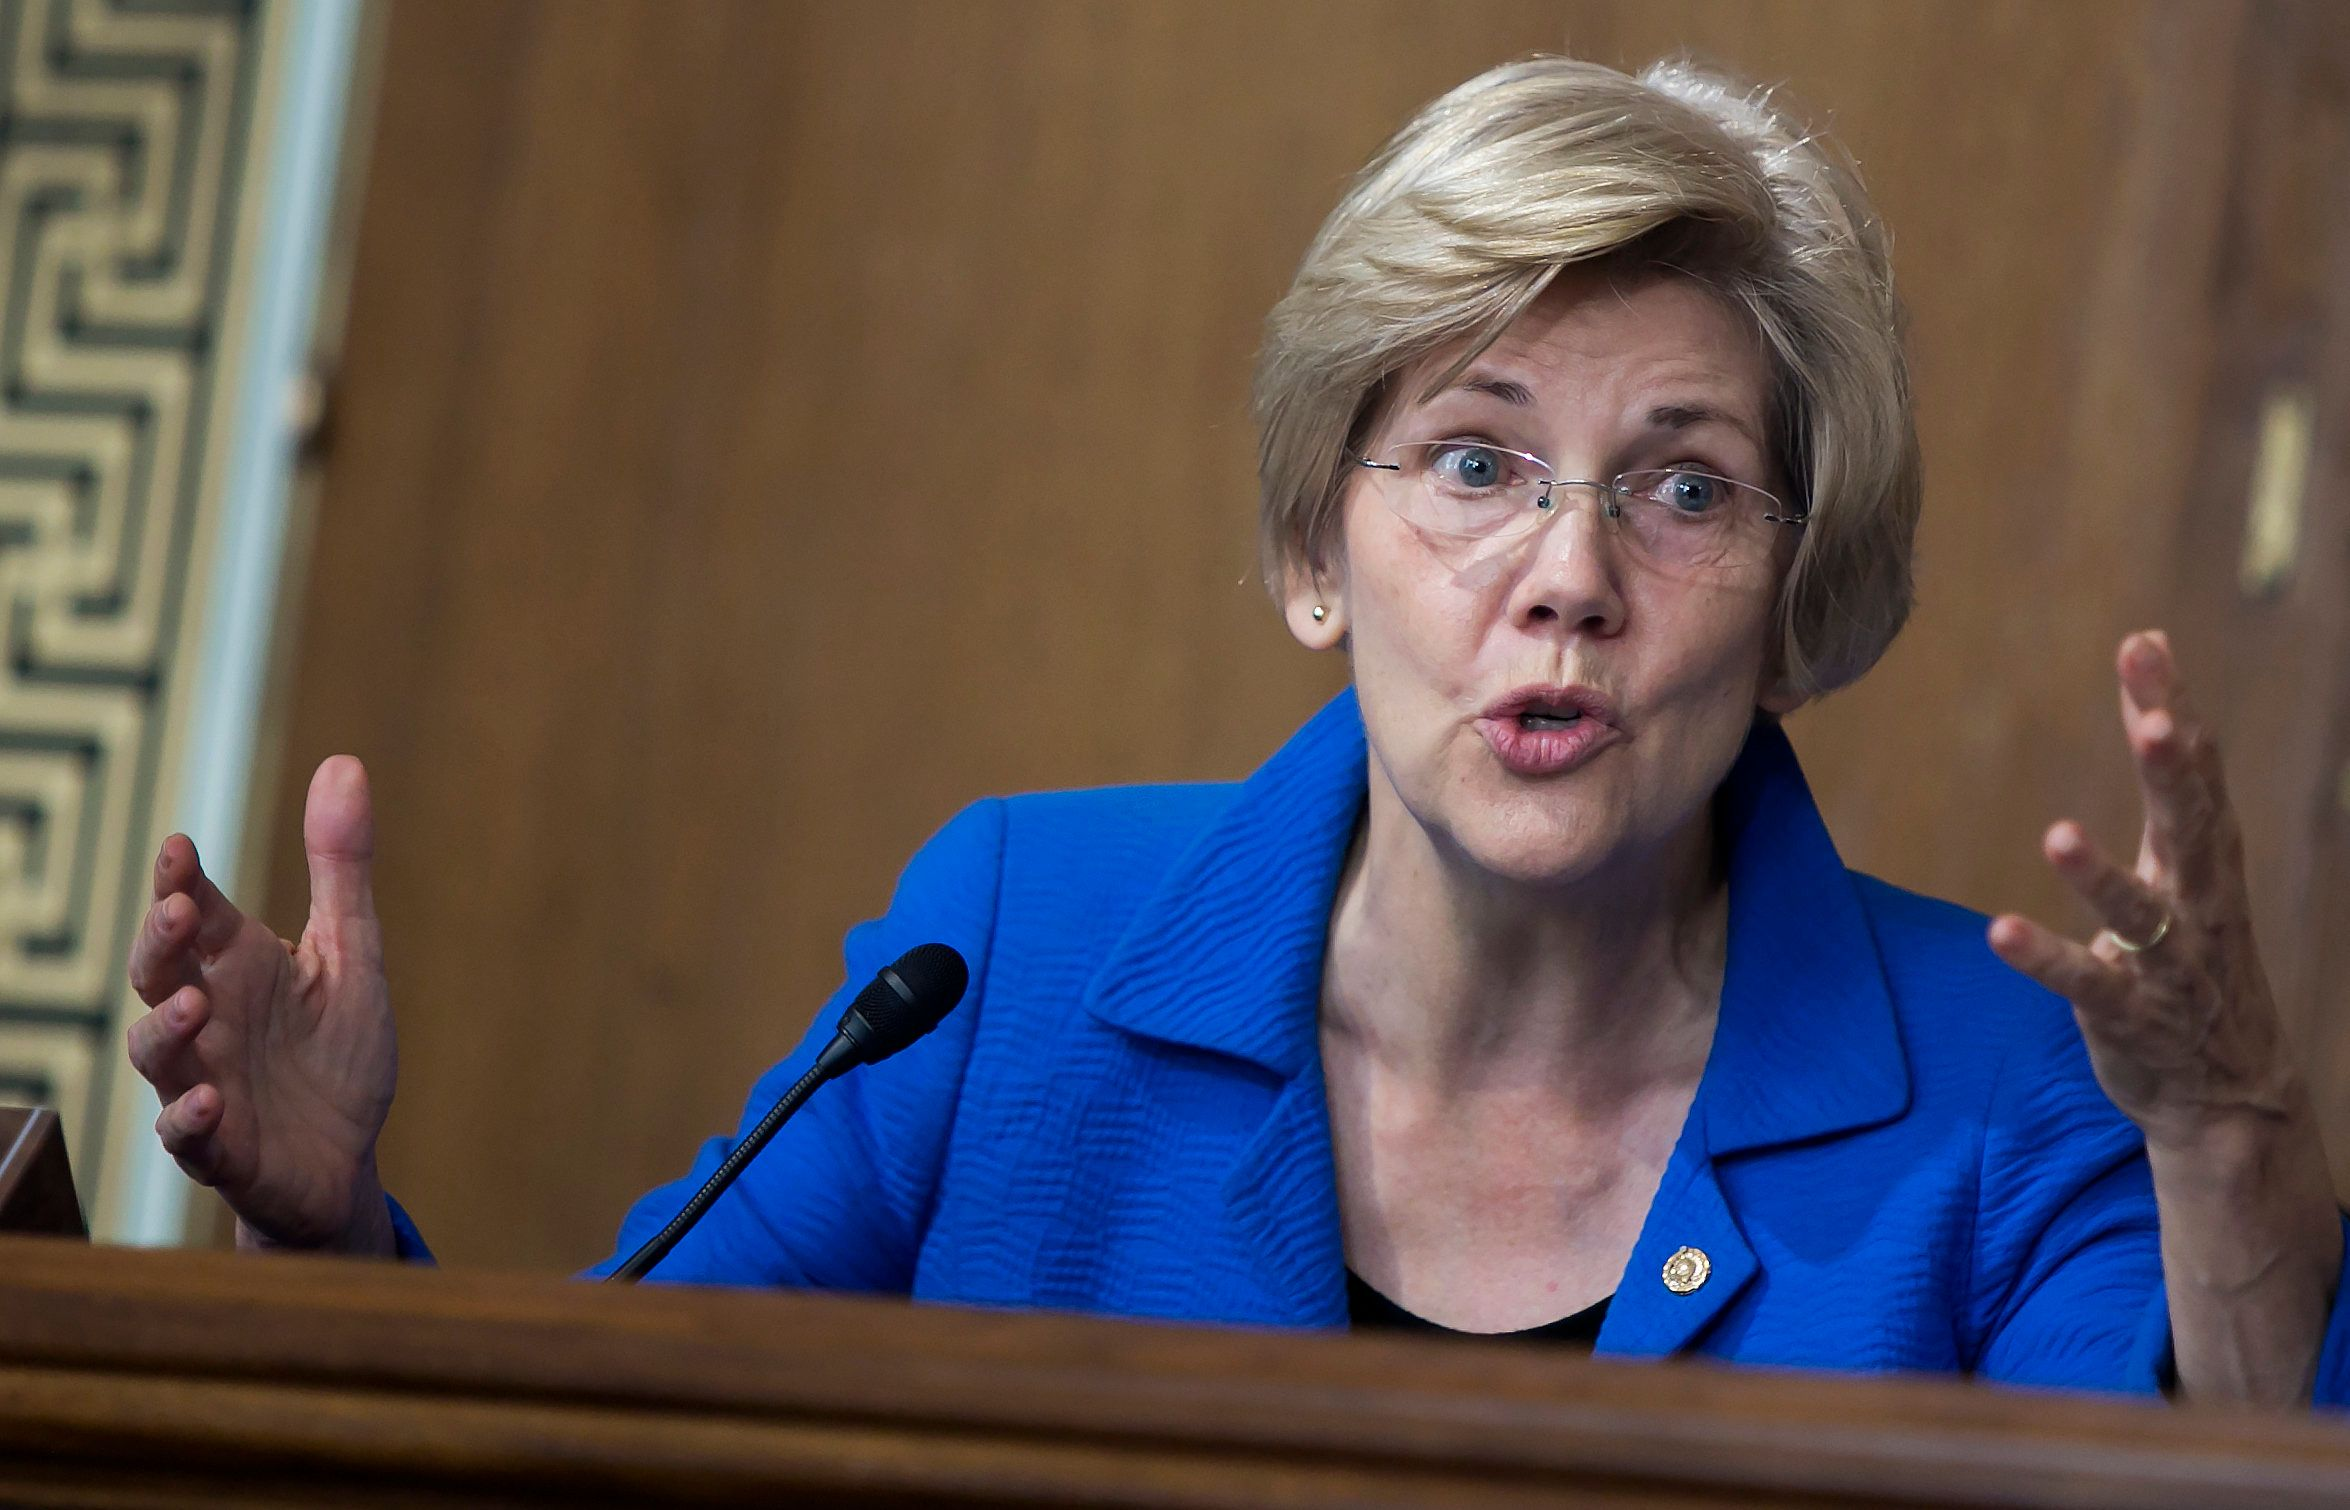 UNITED STATES - JULY 29: Sen. Elizabeth Warren, D-Mass., proposes an amendment as the Senate Energy and Natural Resources Committee holds a markup of the 'Energy Policy Modernization Act of 2015' on Capitol Hill in Washington, July 29, 2015. (Photo By Al Drago/CQ Roll Call)